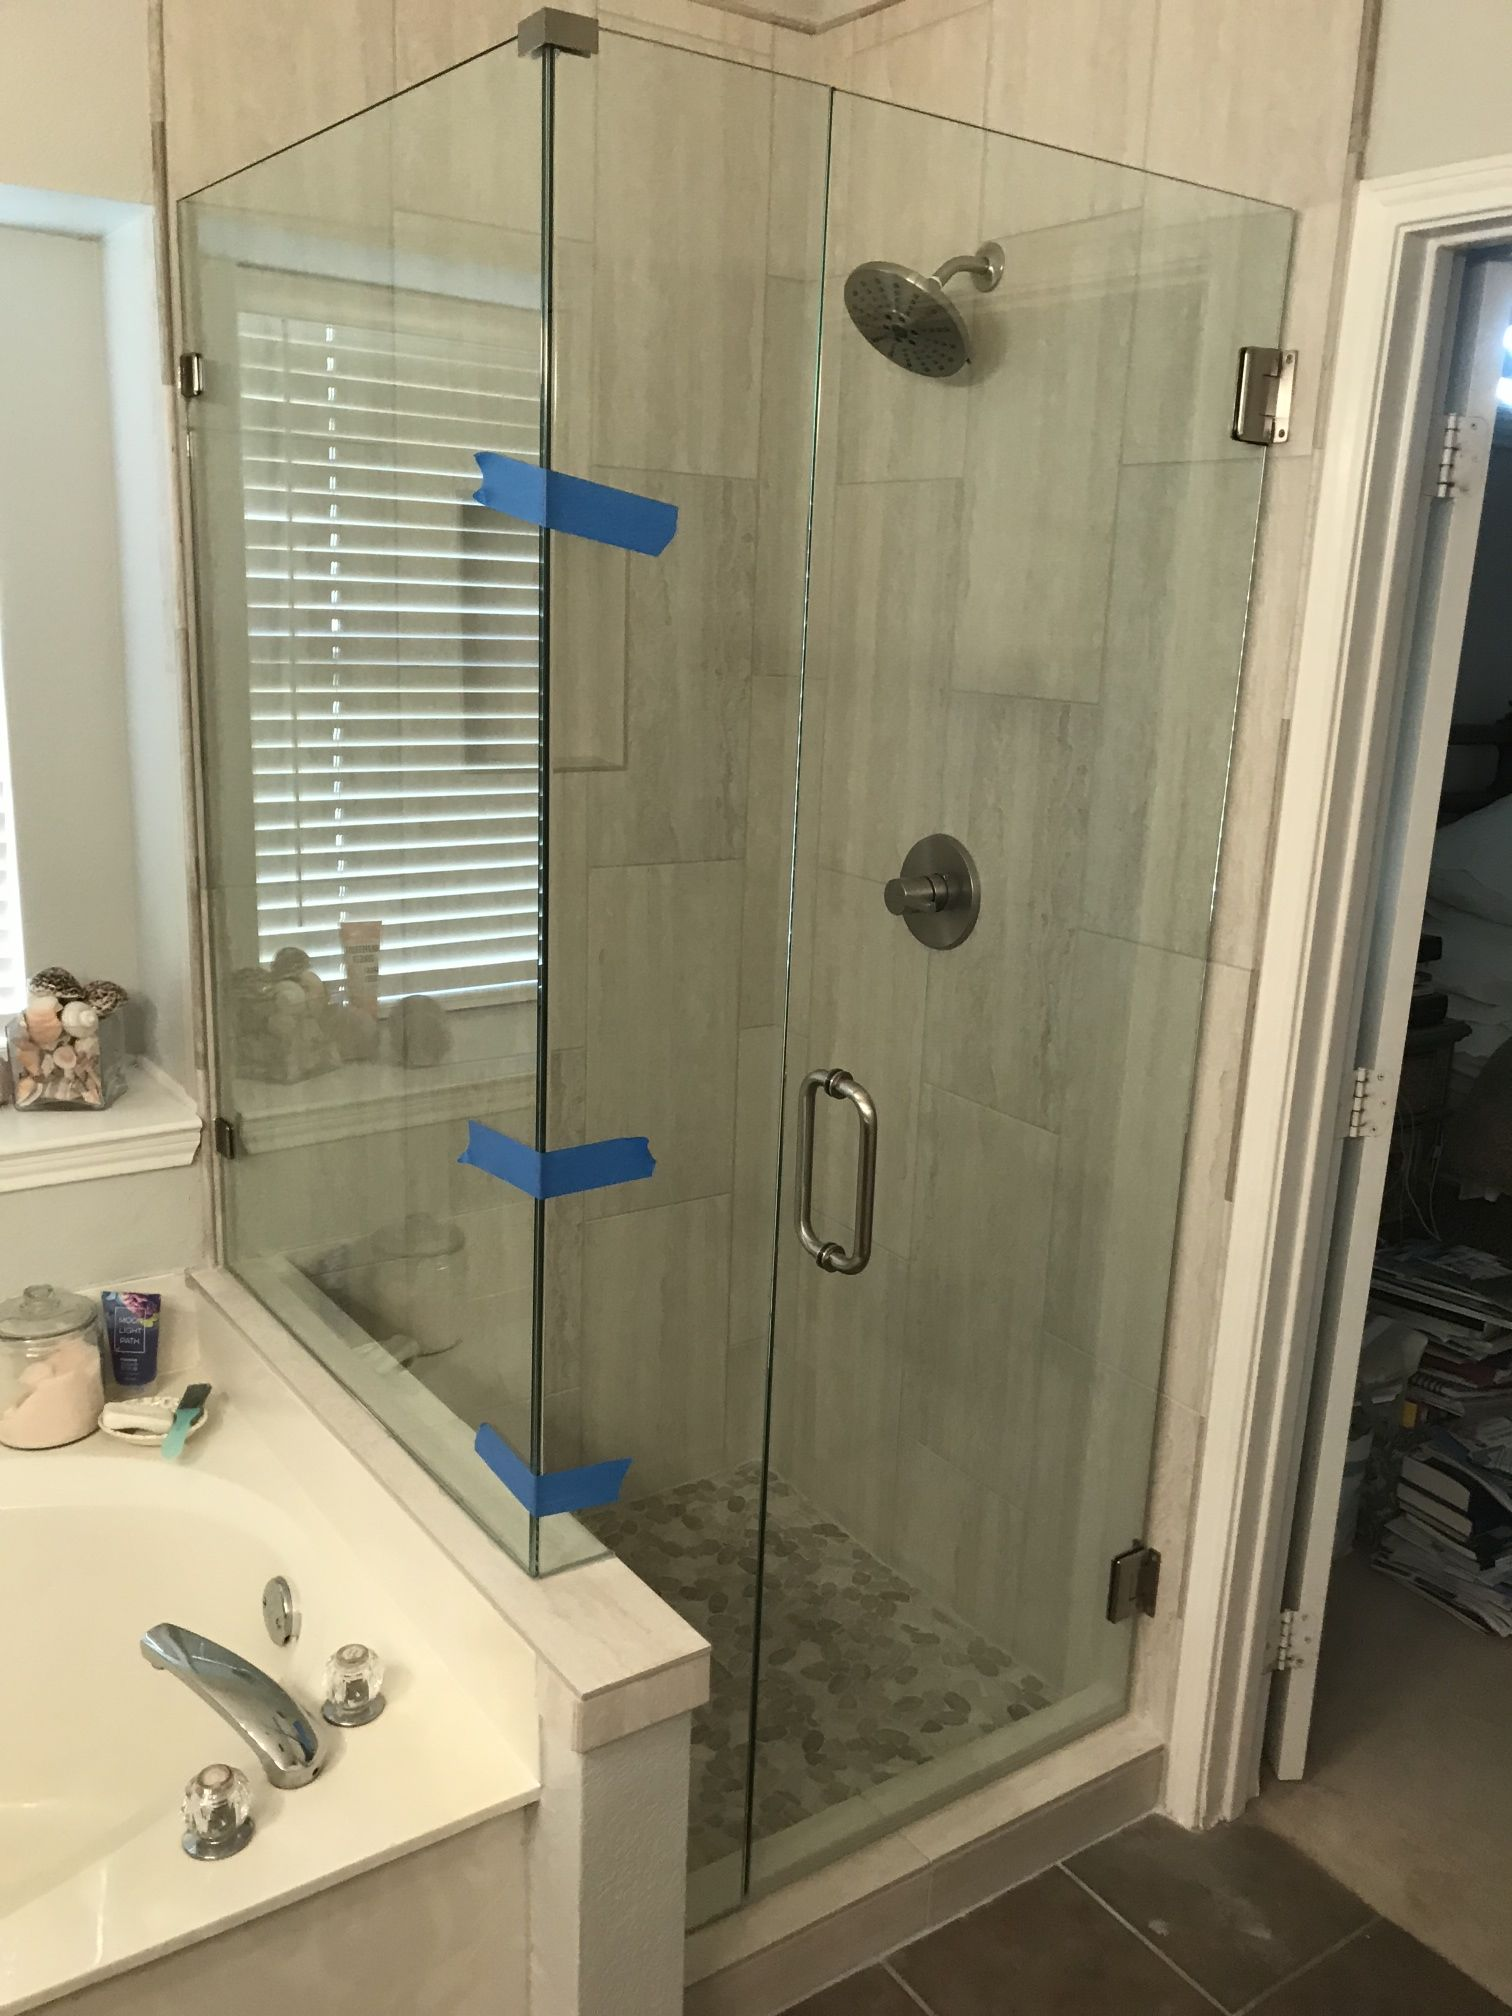 Dallas Bath And Glass Frameless 90 Degree Shower Enclosure With Crl